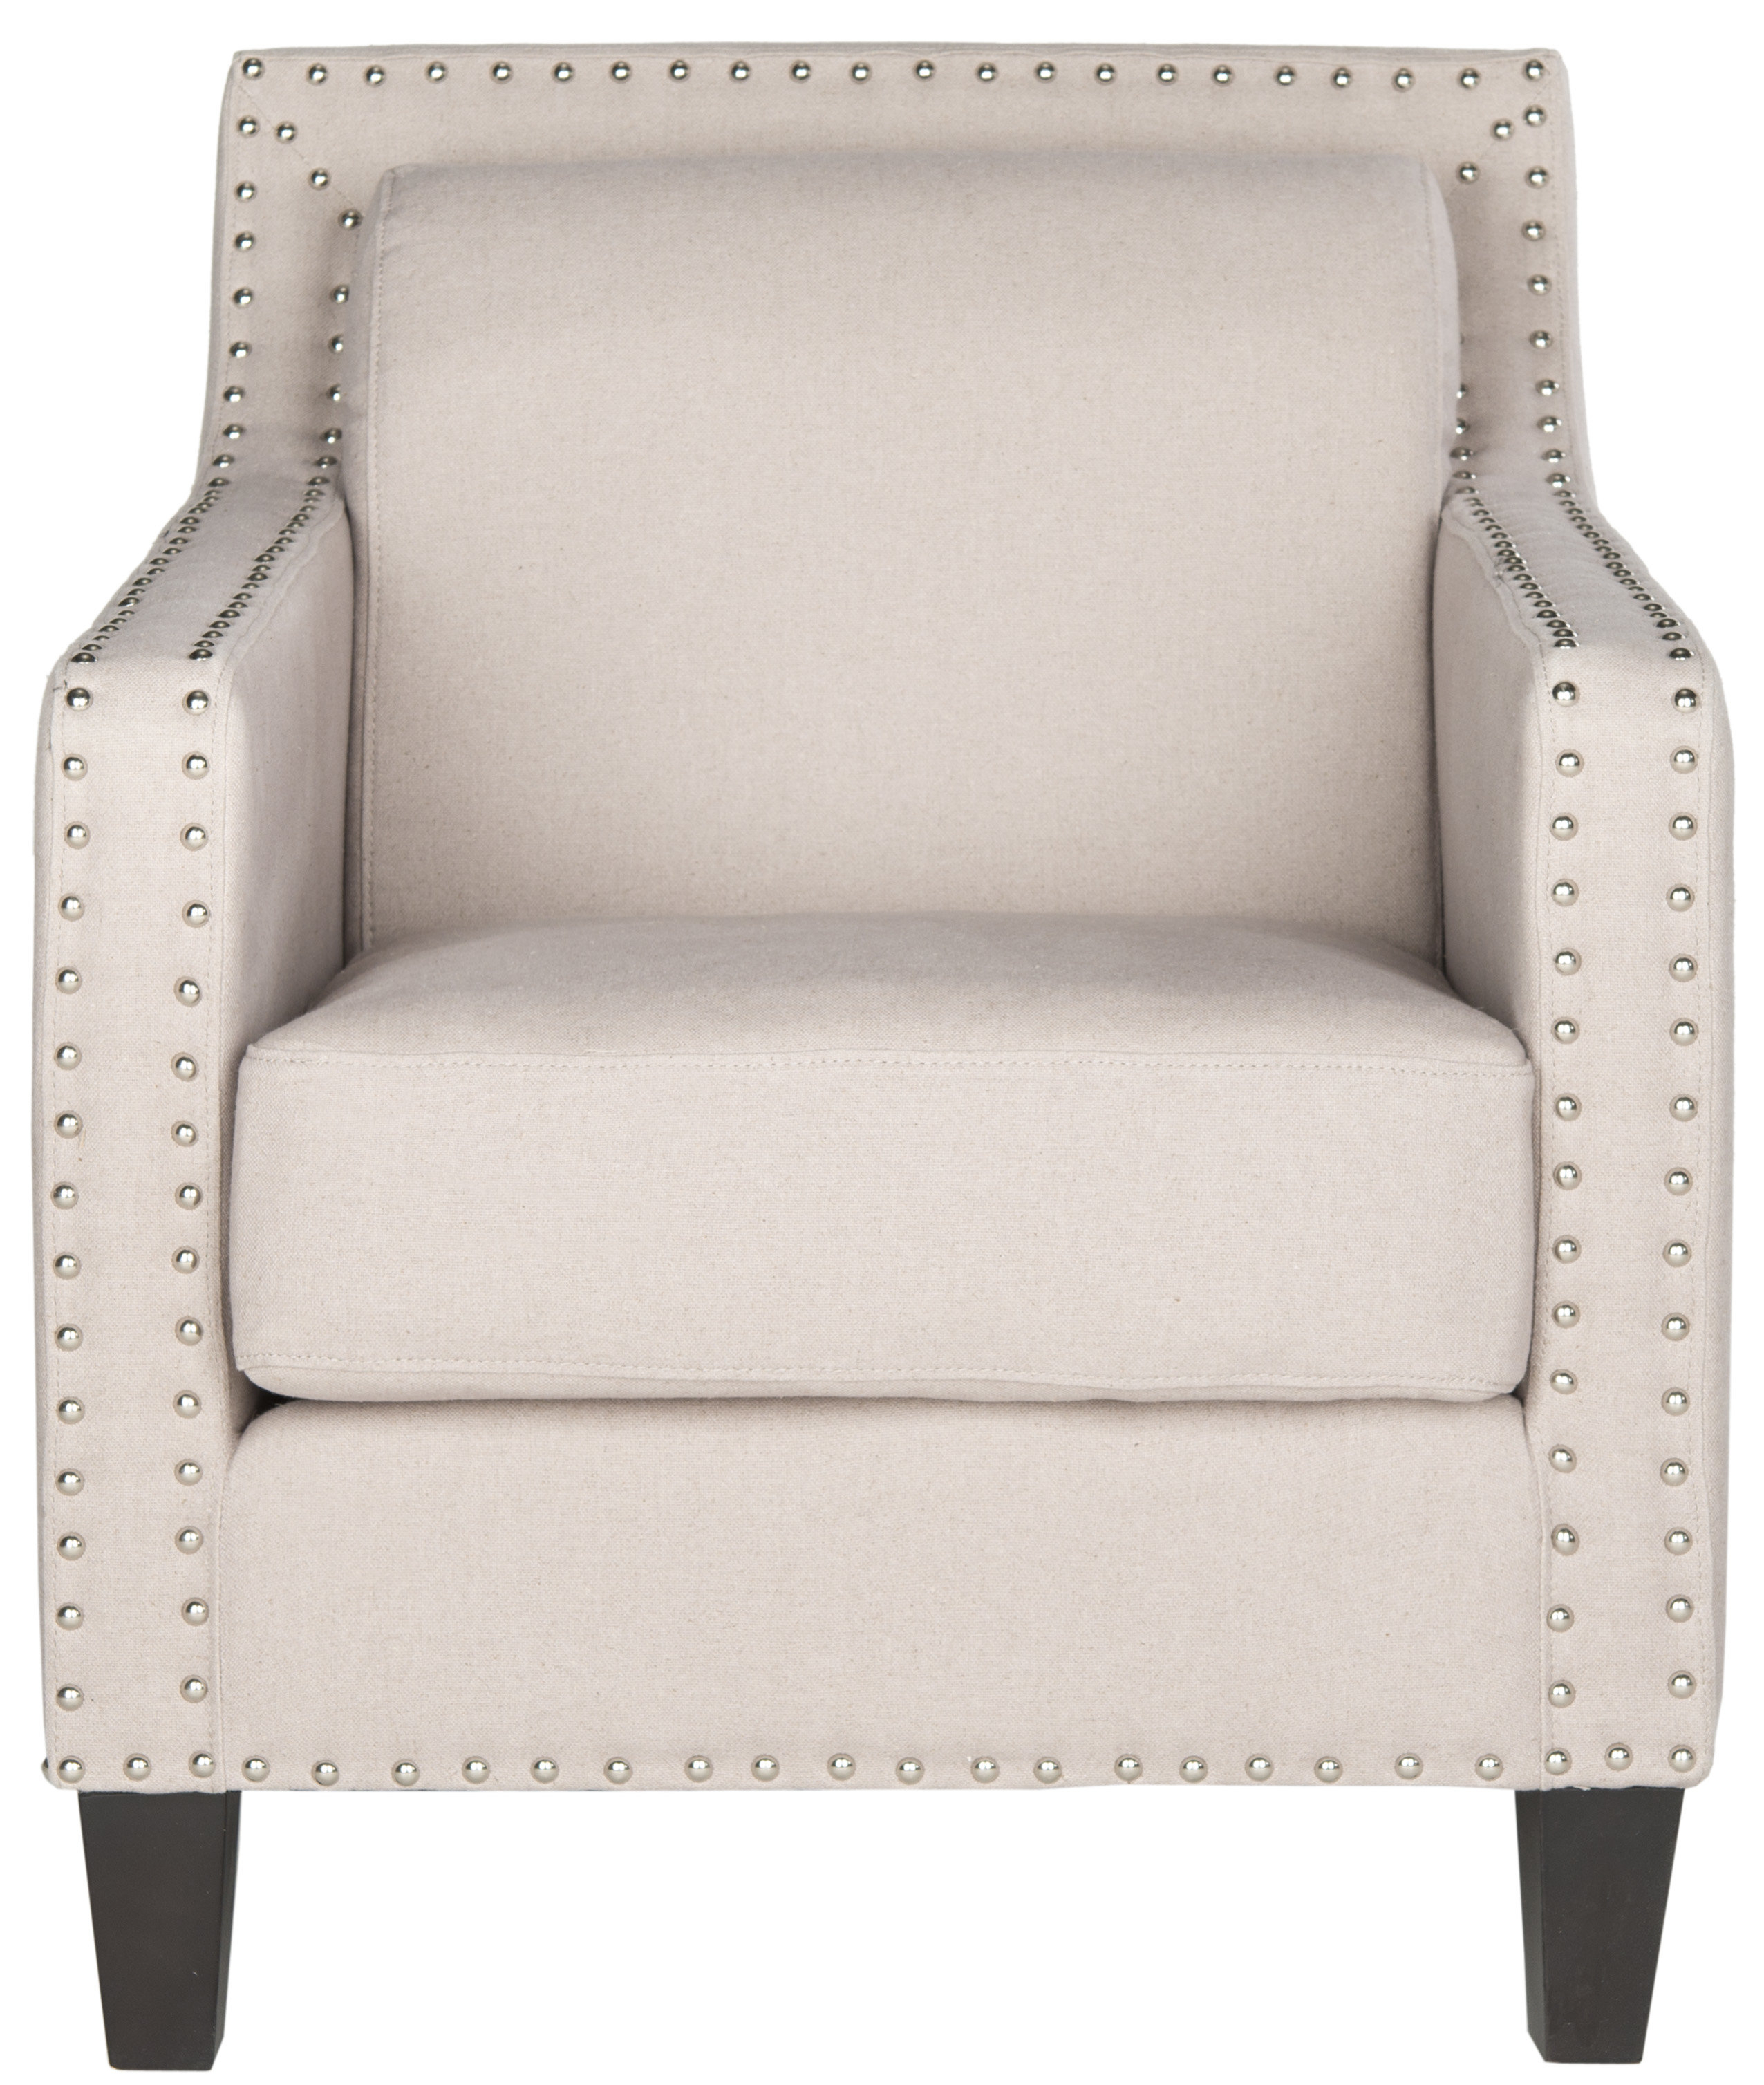 Safavieh Lucy Armchair & Reviews | Wayfair Within Lucy Grey Sofa Chairs (View 14 of 20)